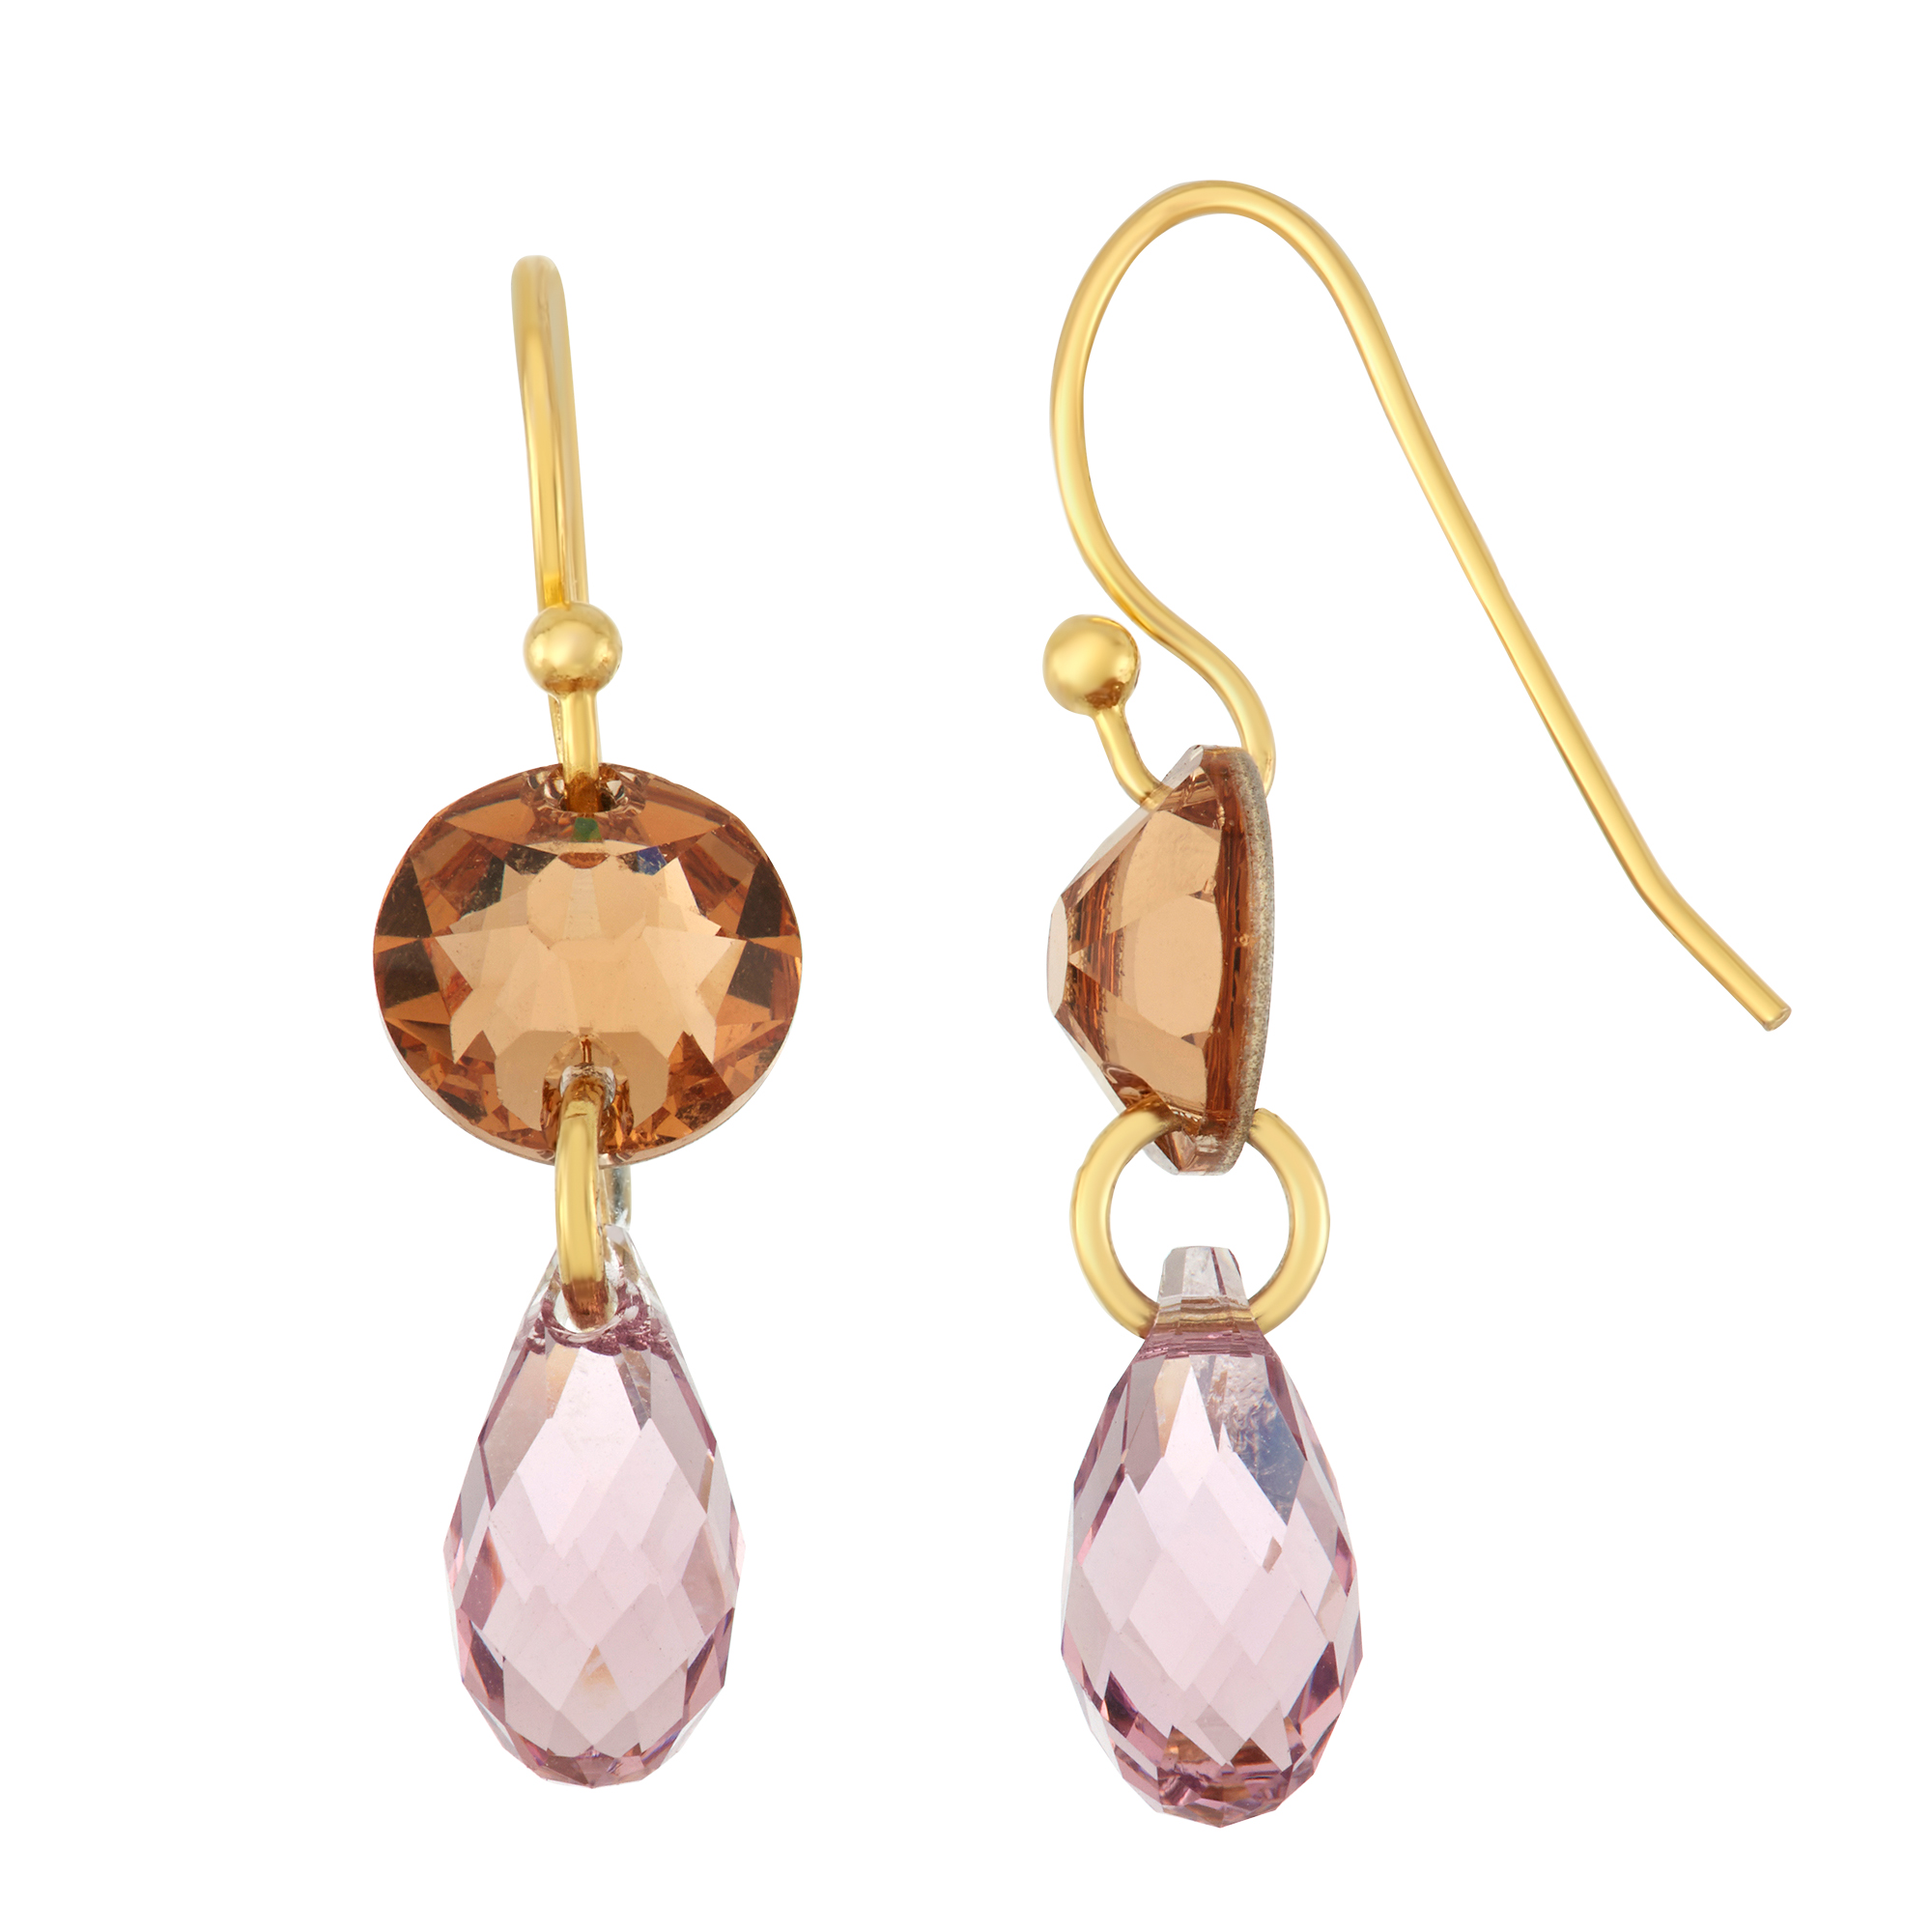 fe82acffb Details about 14K Gold Plated Circle & Pear Drop Earring w/ Choice of Color  Swarovski Crystals